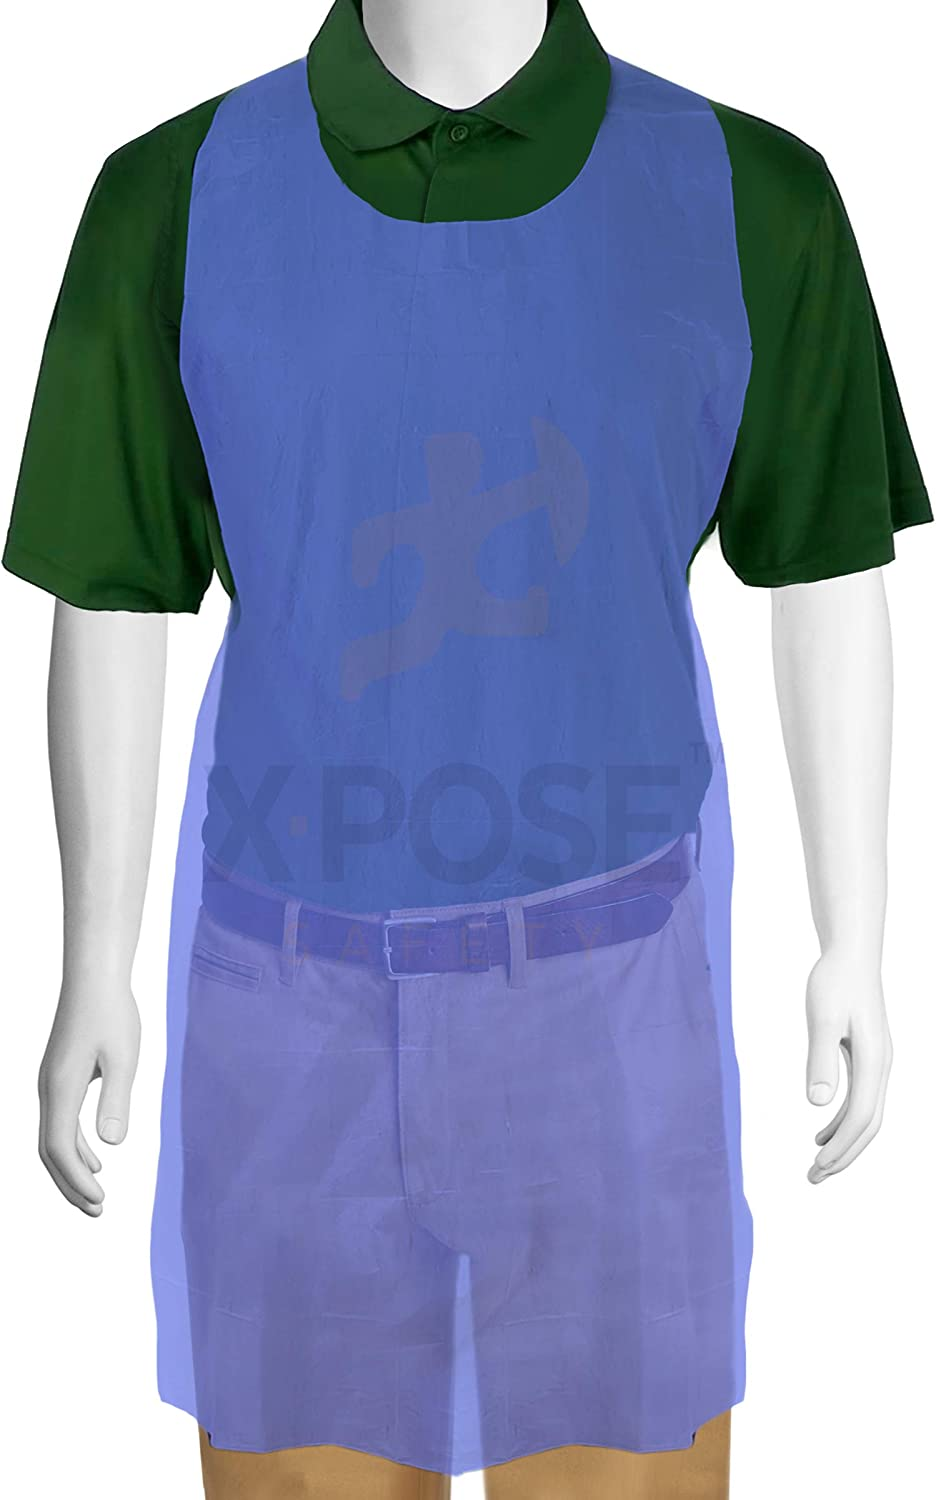 """100 Blue Plastic Disposable Aprons For Cooking, Painting and More - Individually Packaged - Durable 1 mil Waterproof Polyethylene - 24"""" x 48"""" - by Xpose Safety"""